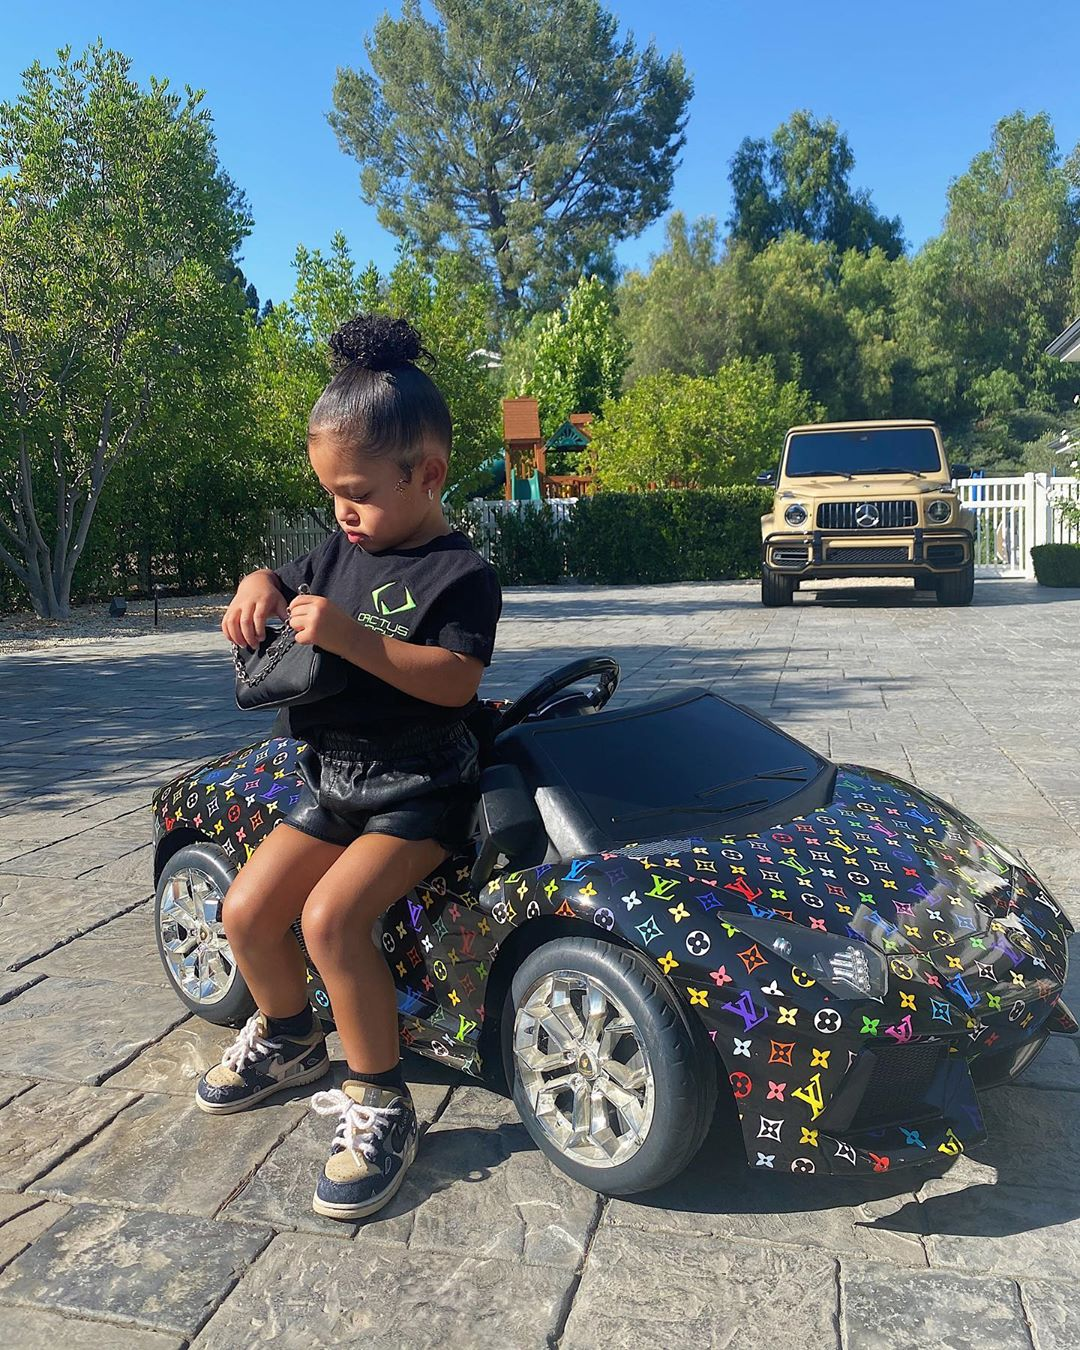 Kylie Jenner's Daughter Stormi Has a Louis Vuitton Toy Car: Photos